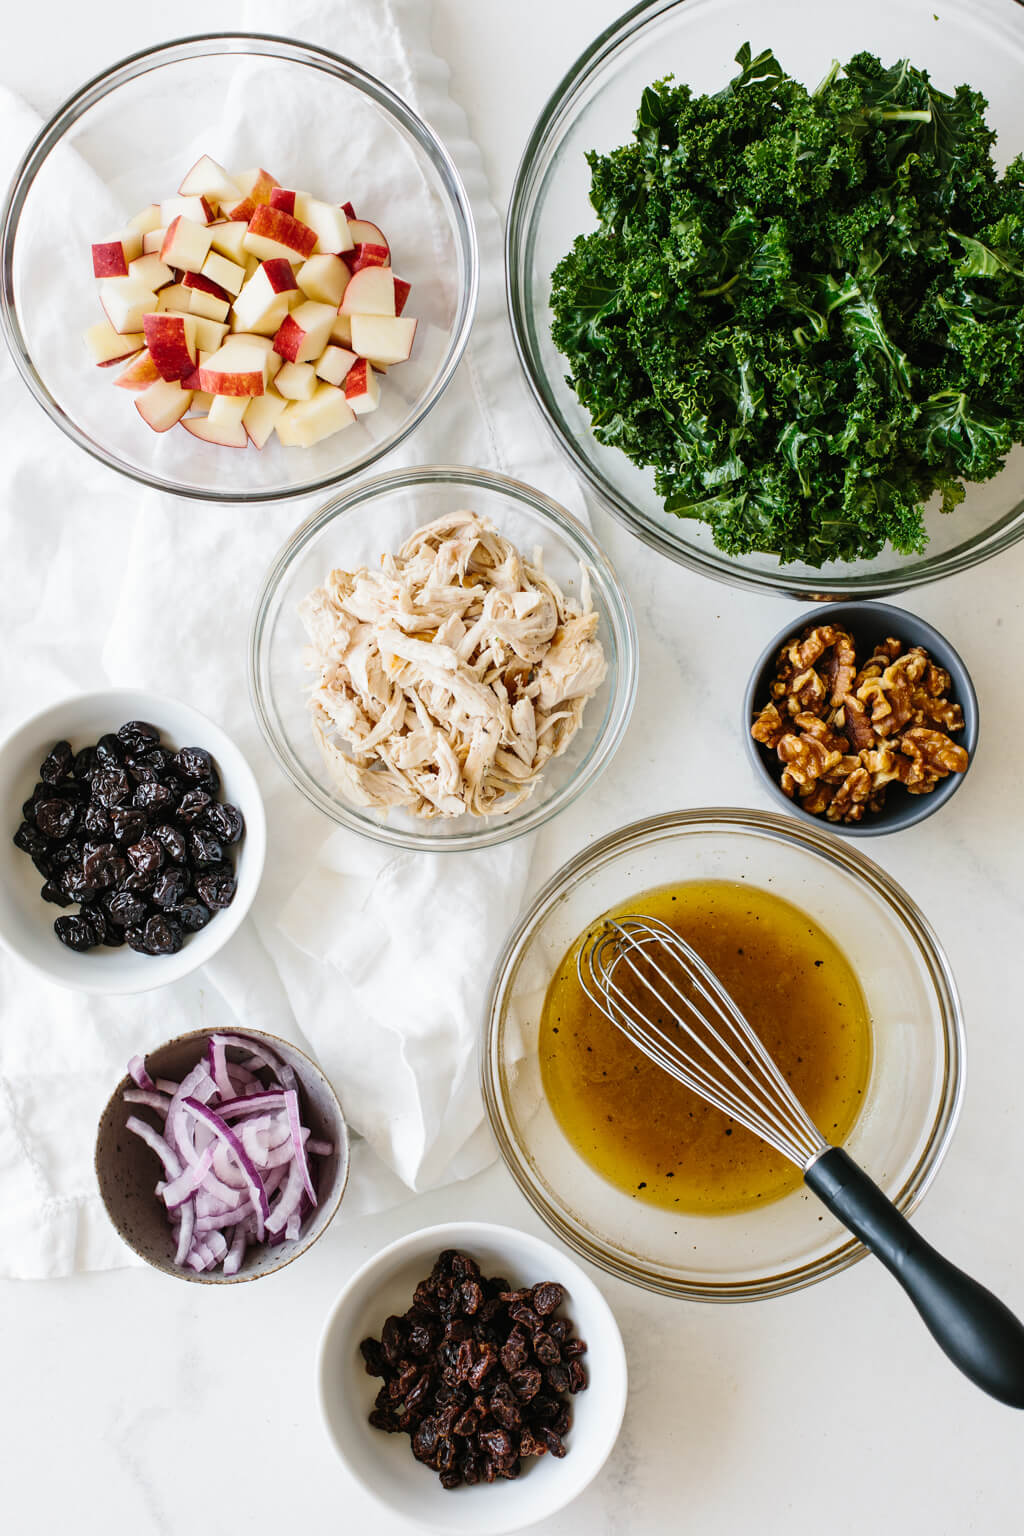 Ingredients for the kale salad recipe in individual bowls on a table.